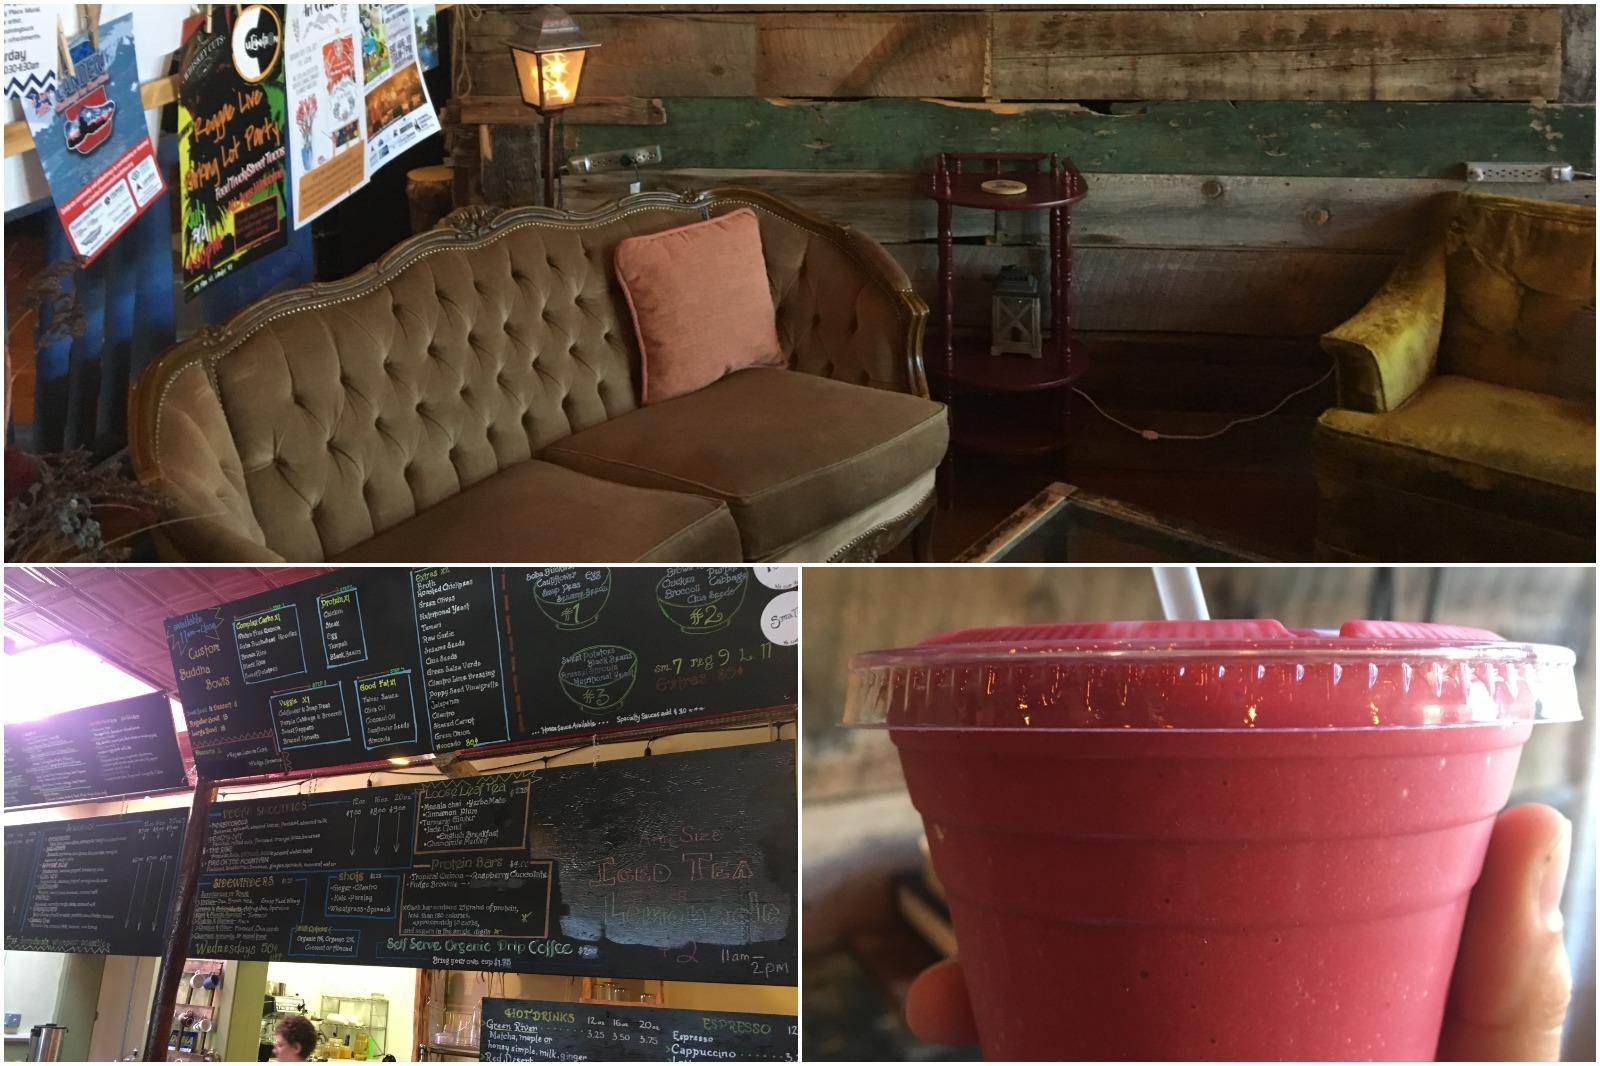 Enjoy a smoothie at the Juicery restaurant in Lander Wyoming